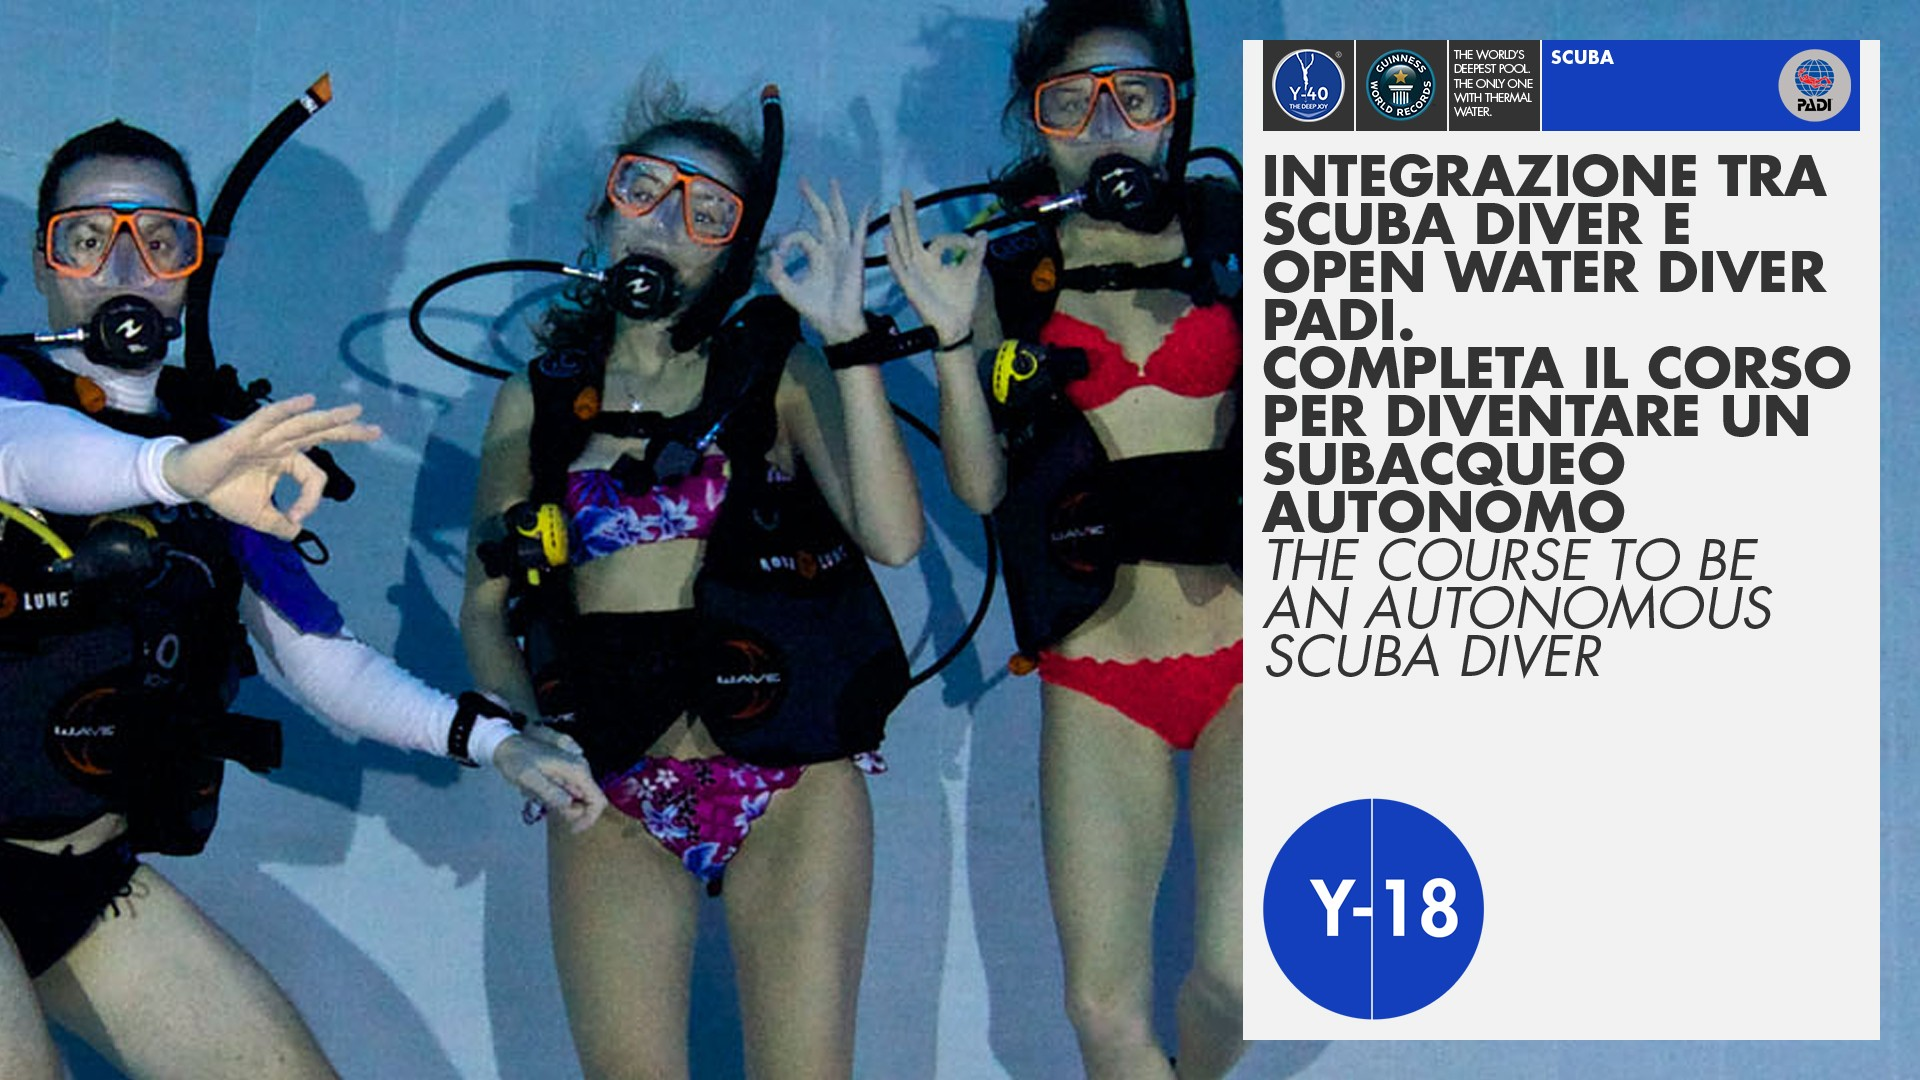 Upgrade from Padi Scuba Diver and Open Water Diver Course in Y-40®